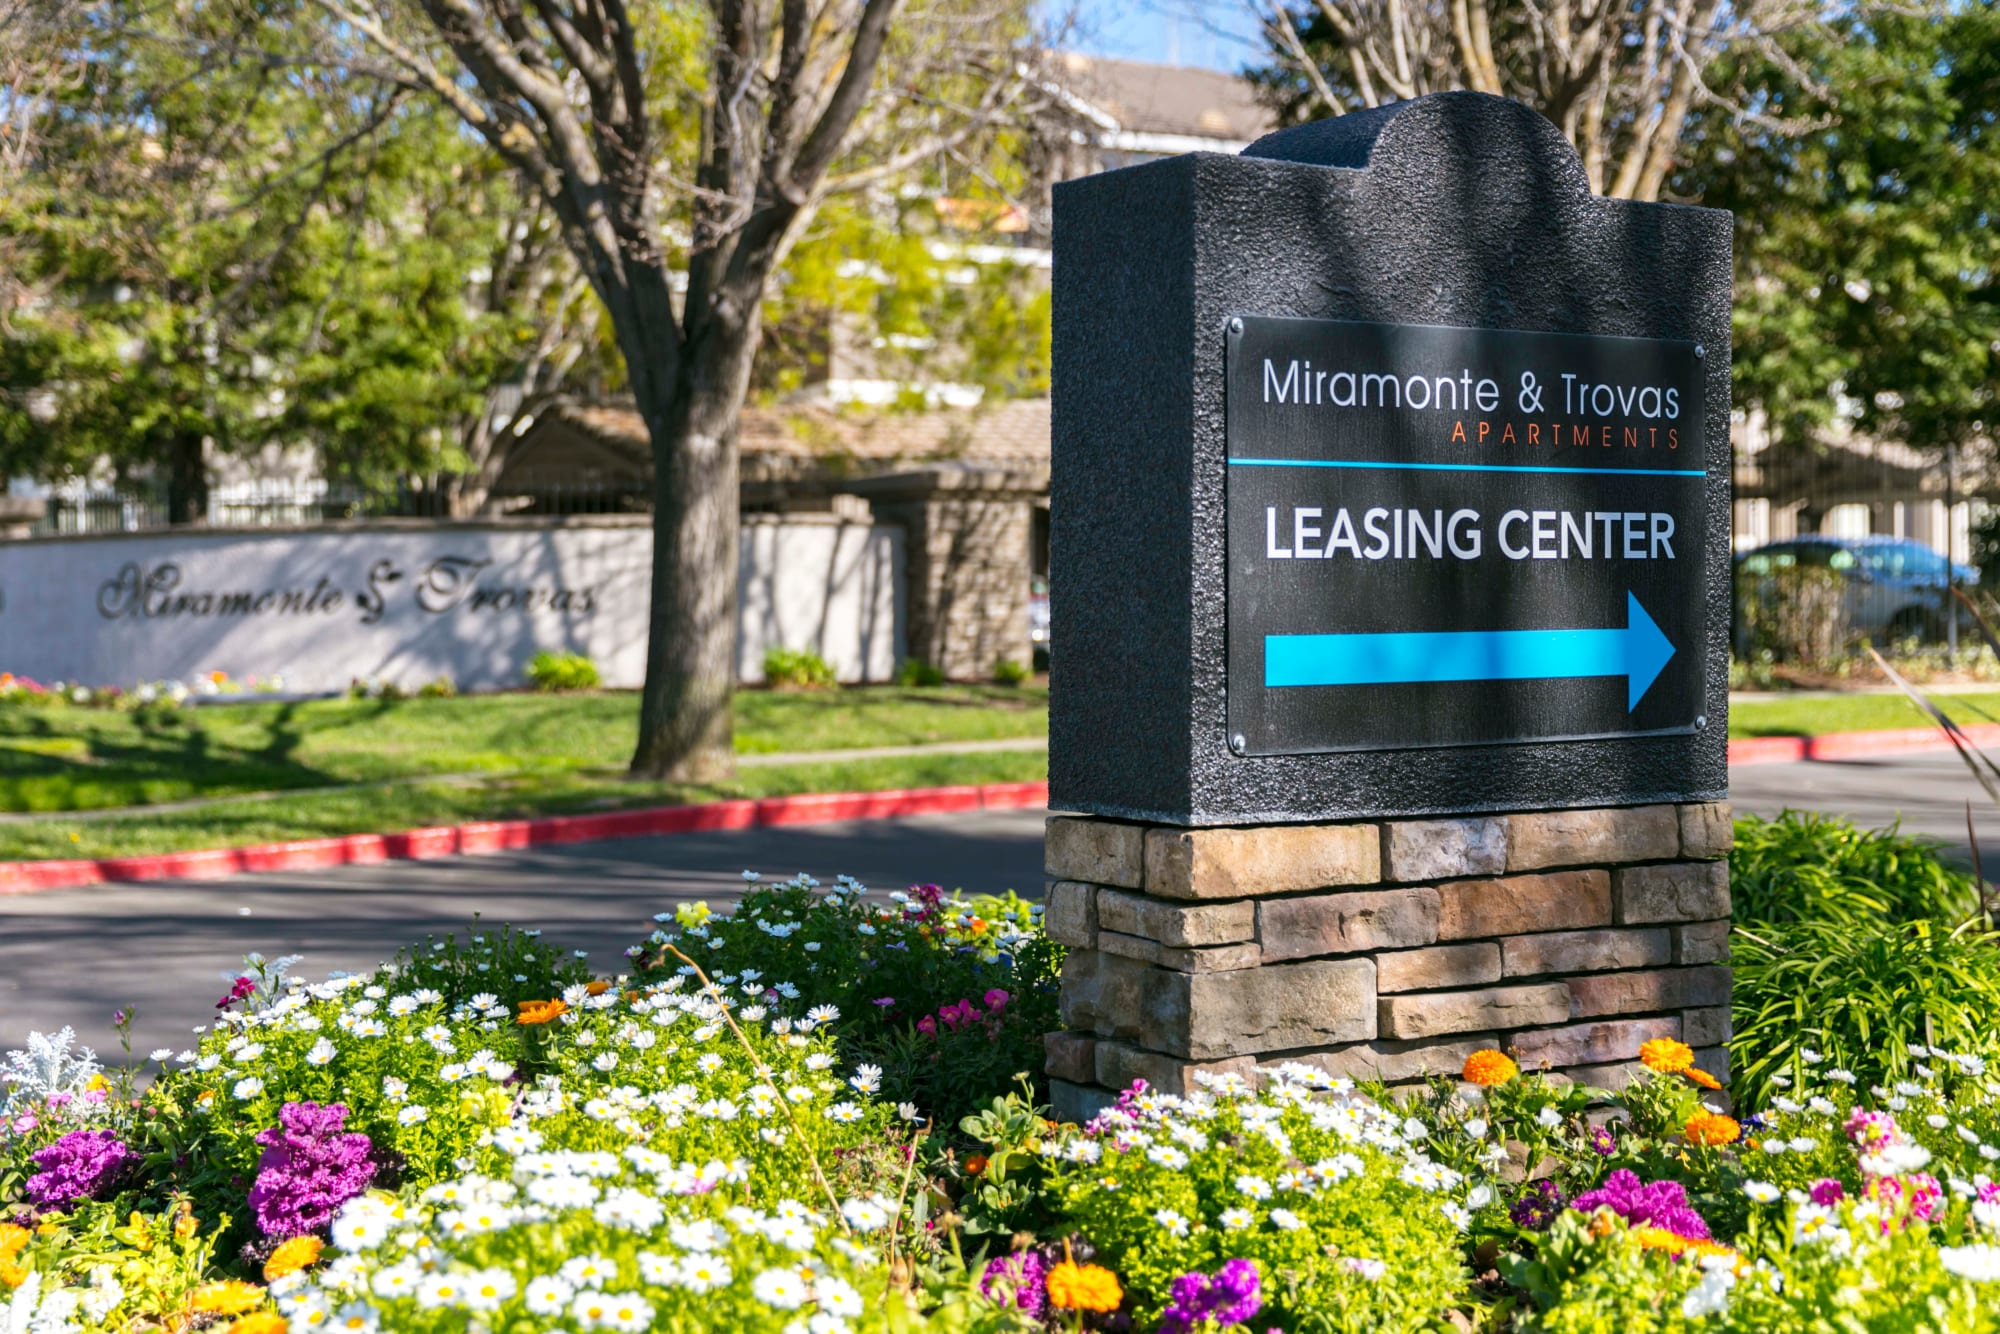 Leasing center sign at Miramonte and Trovas in Sacramento, California